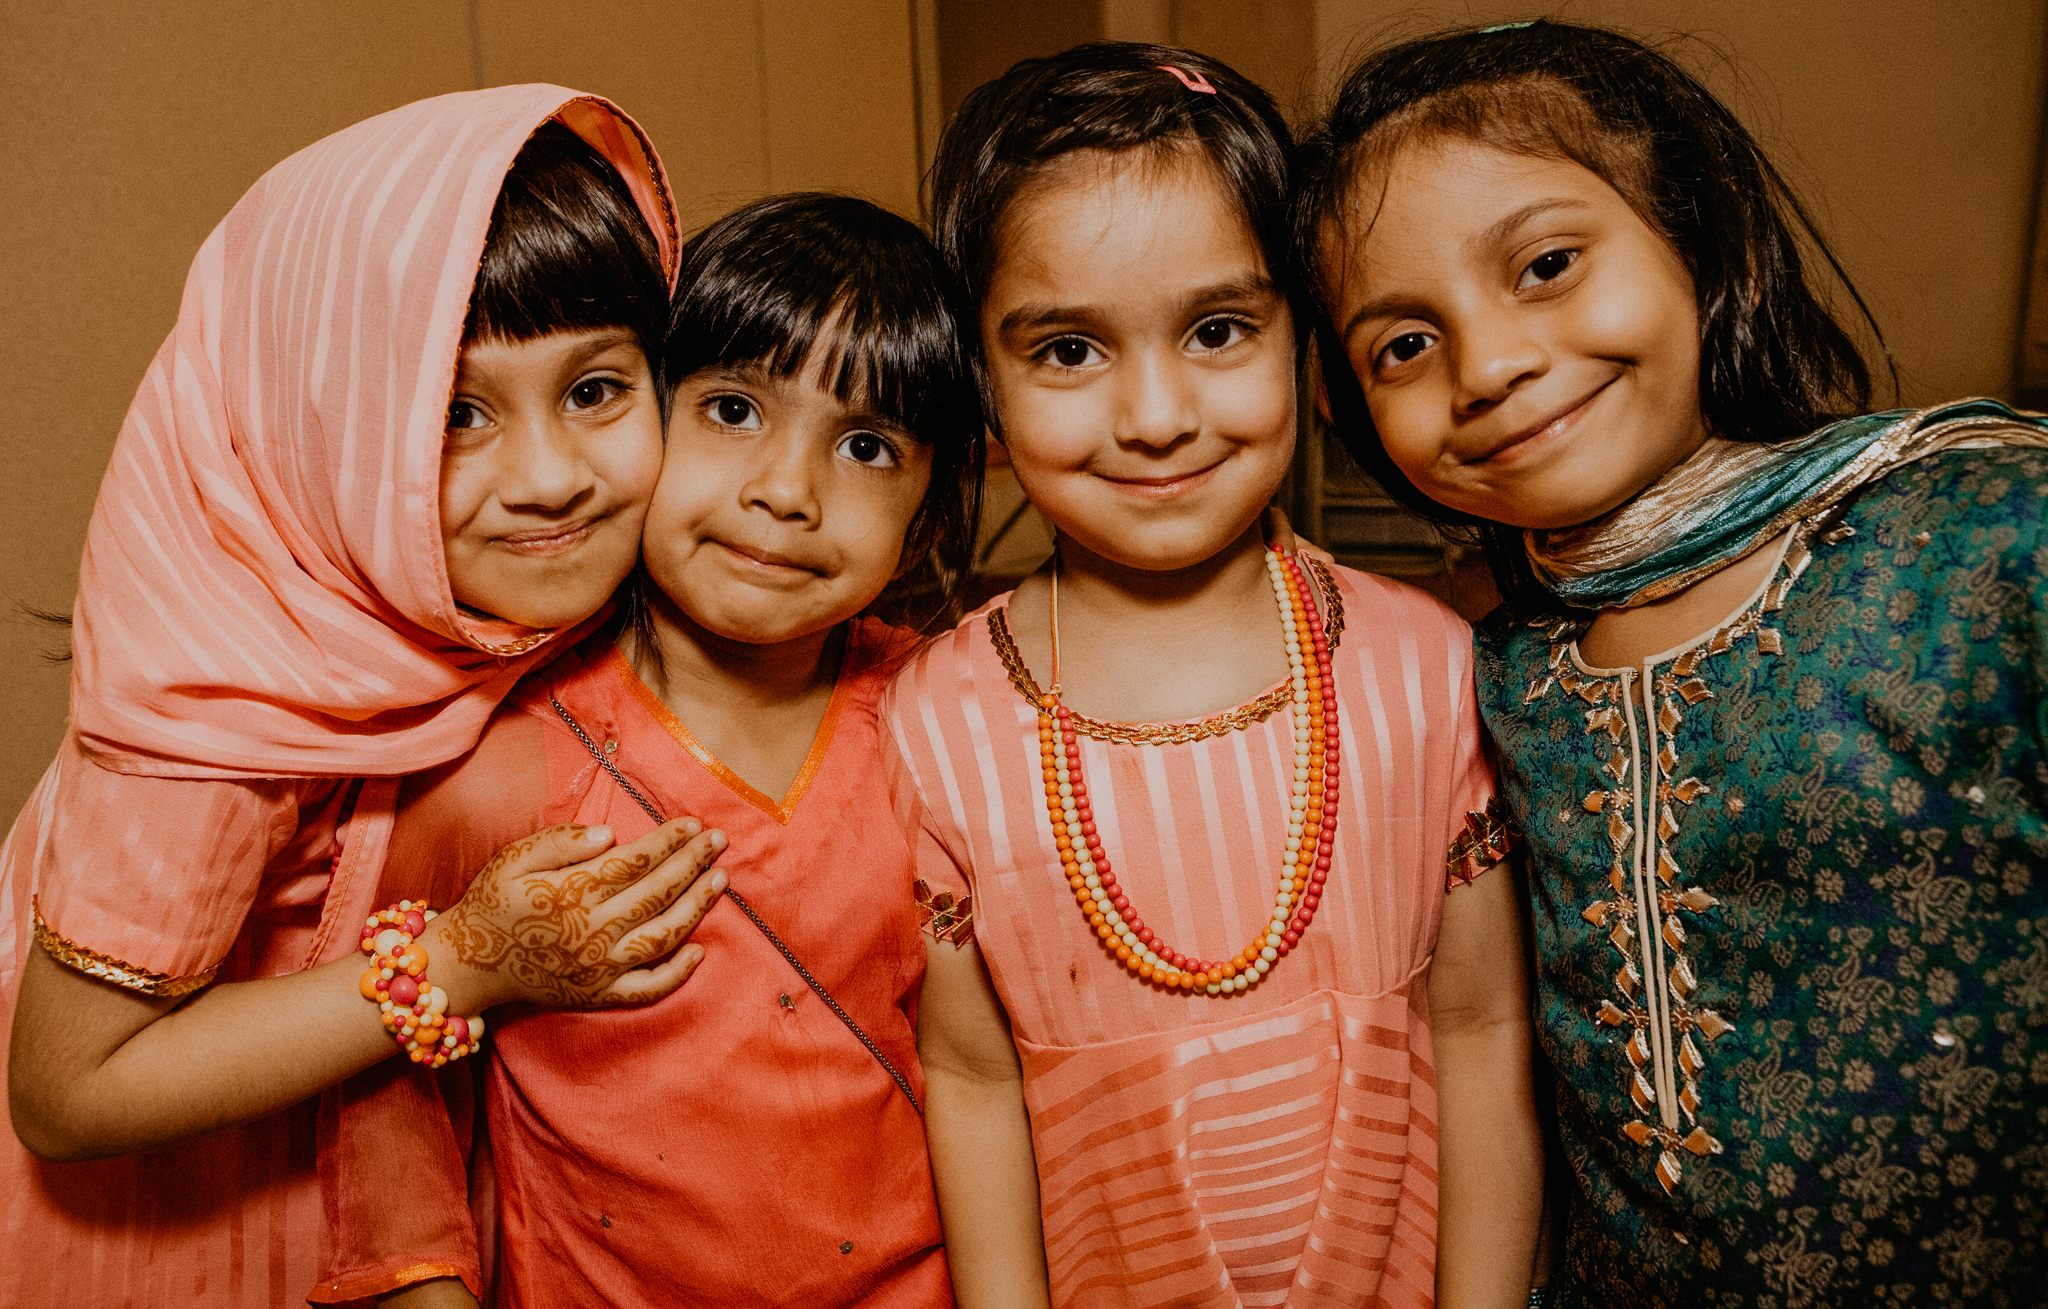 Candid photo of kids at Indian wedding Nikah